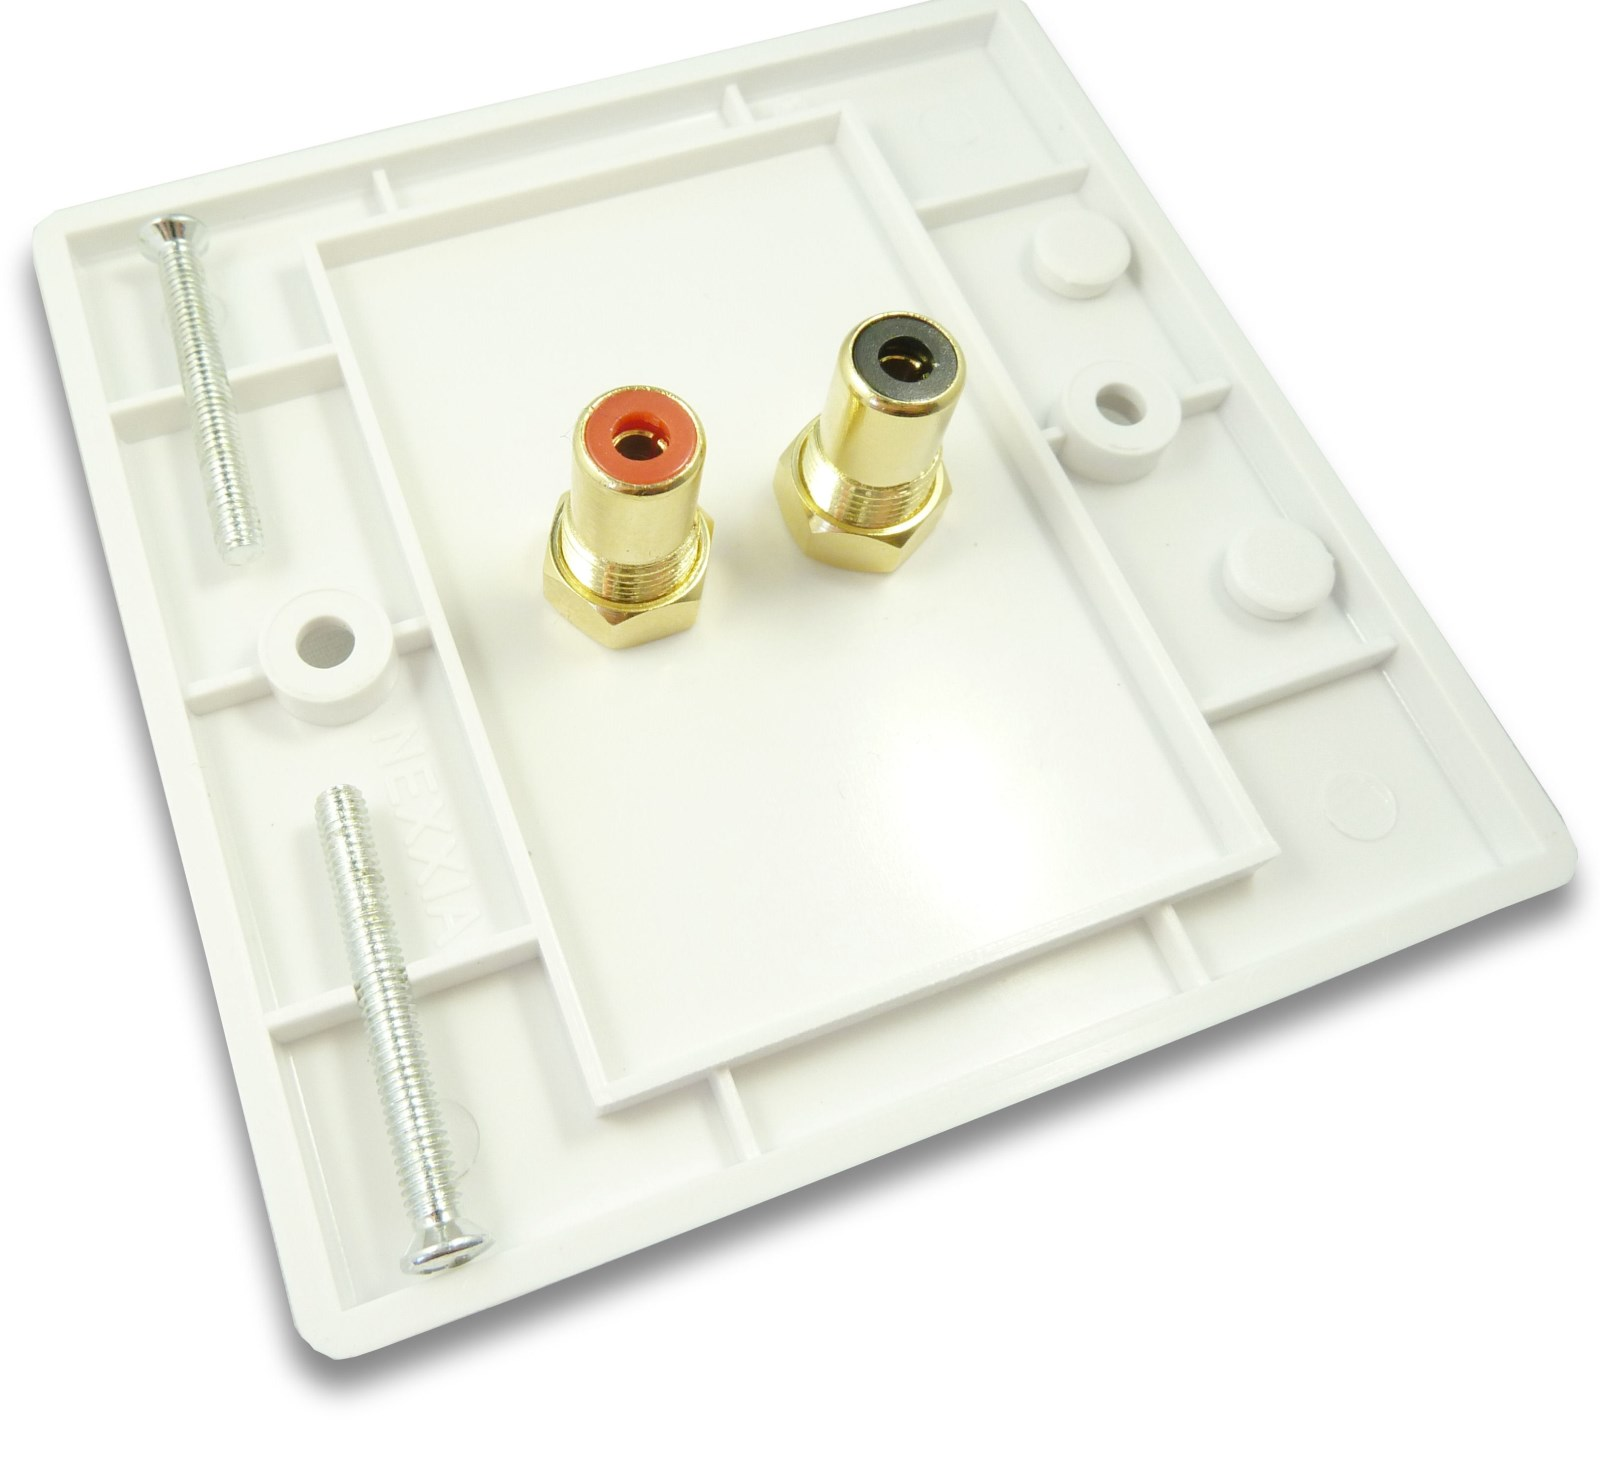 Stereo Phono Rca Wall Plate Quick Connect No Soldering Cables4all Audio Wiring Plates